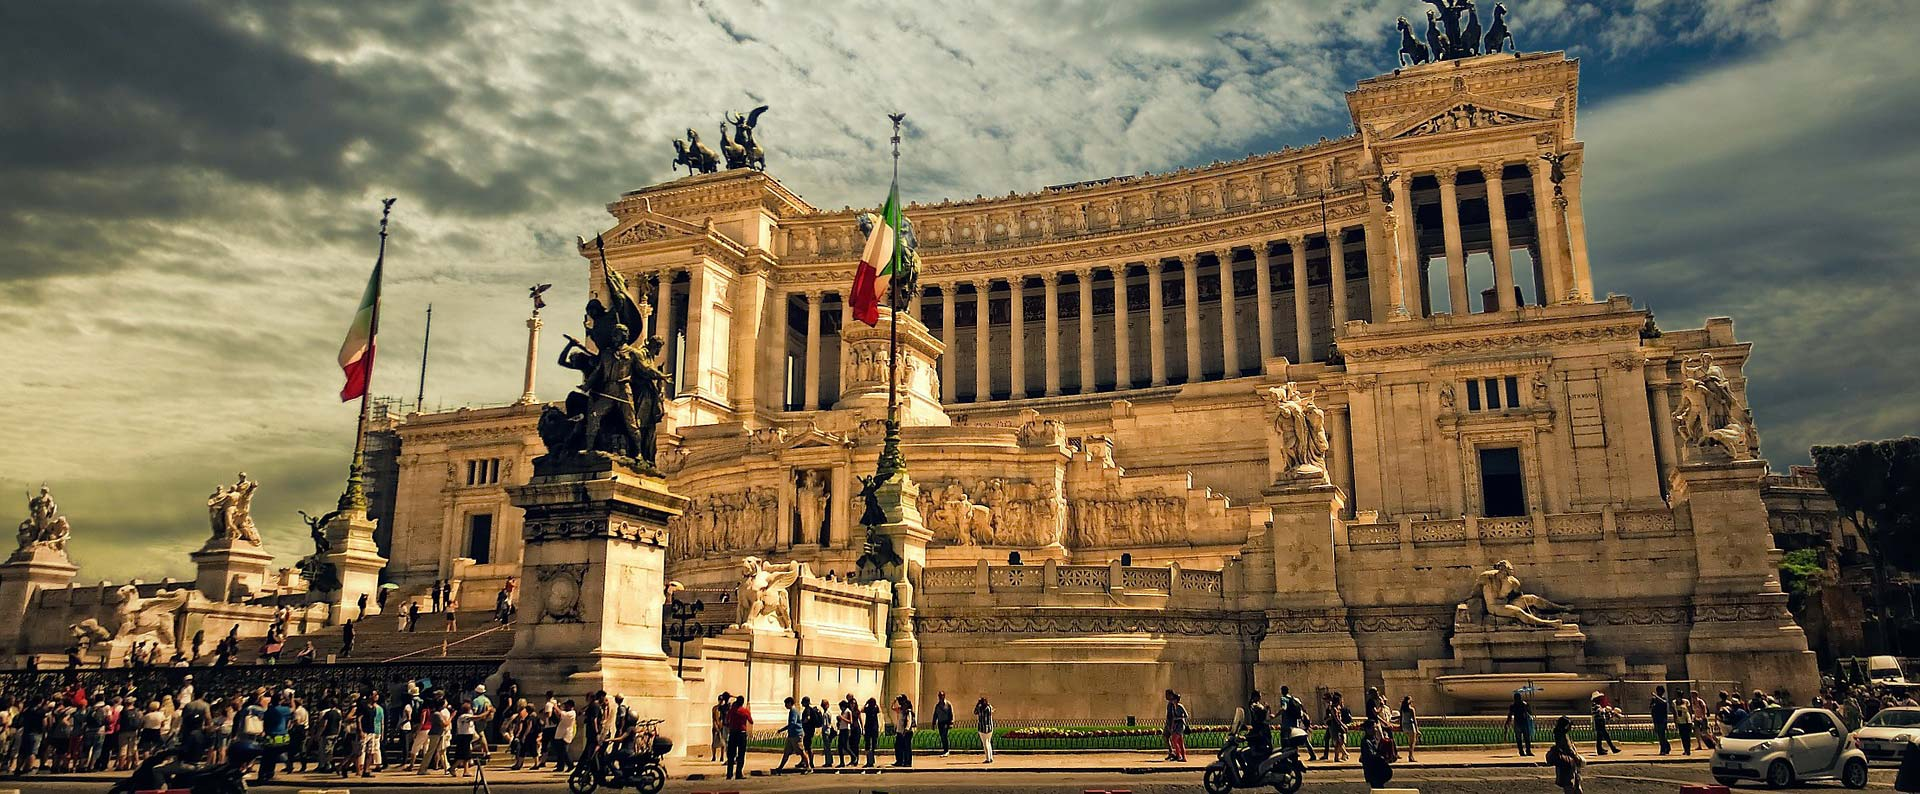 Discounted flight tickets from Sydney to Rome - IFlyFirstClass